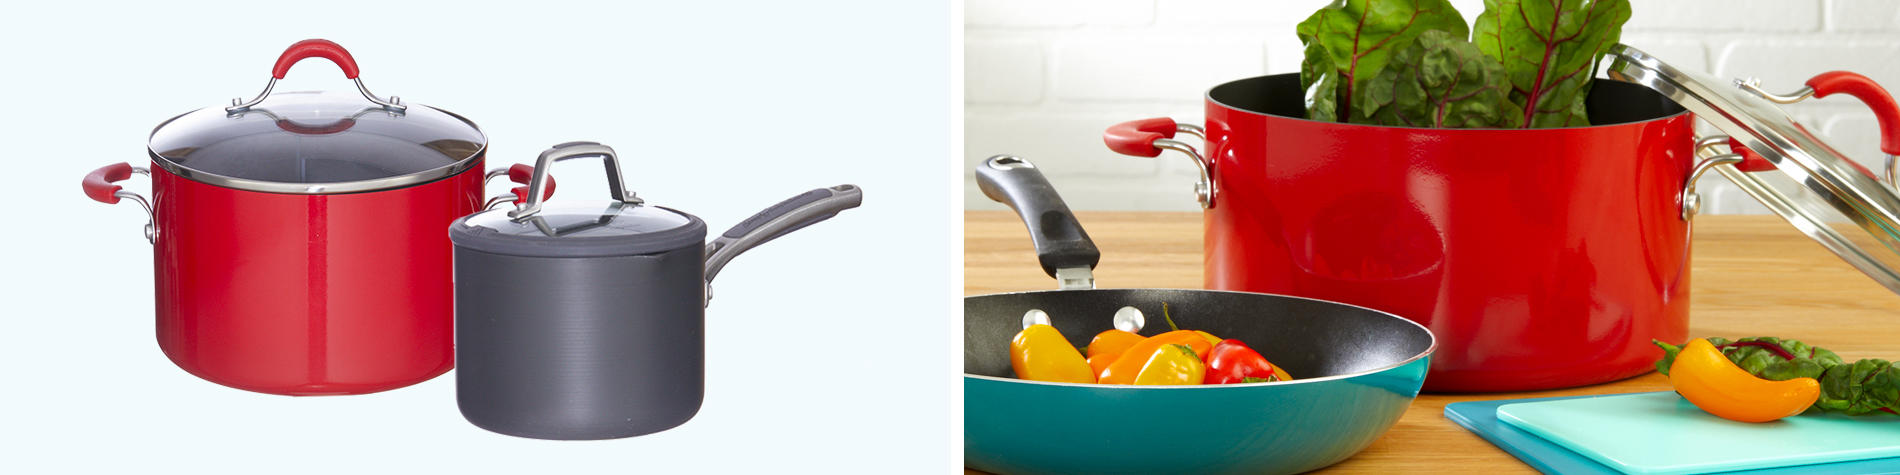 Quality kitchenware, bakeware, utensils, gadgets, storage and gourmet food.